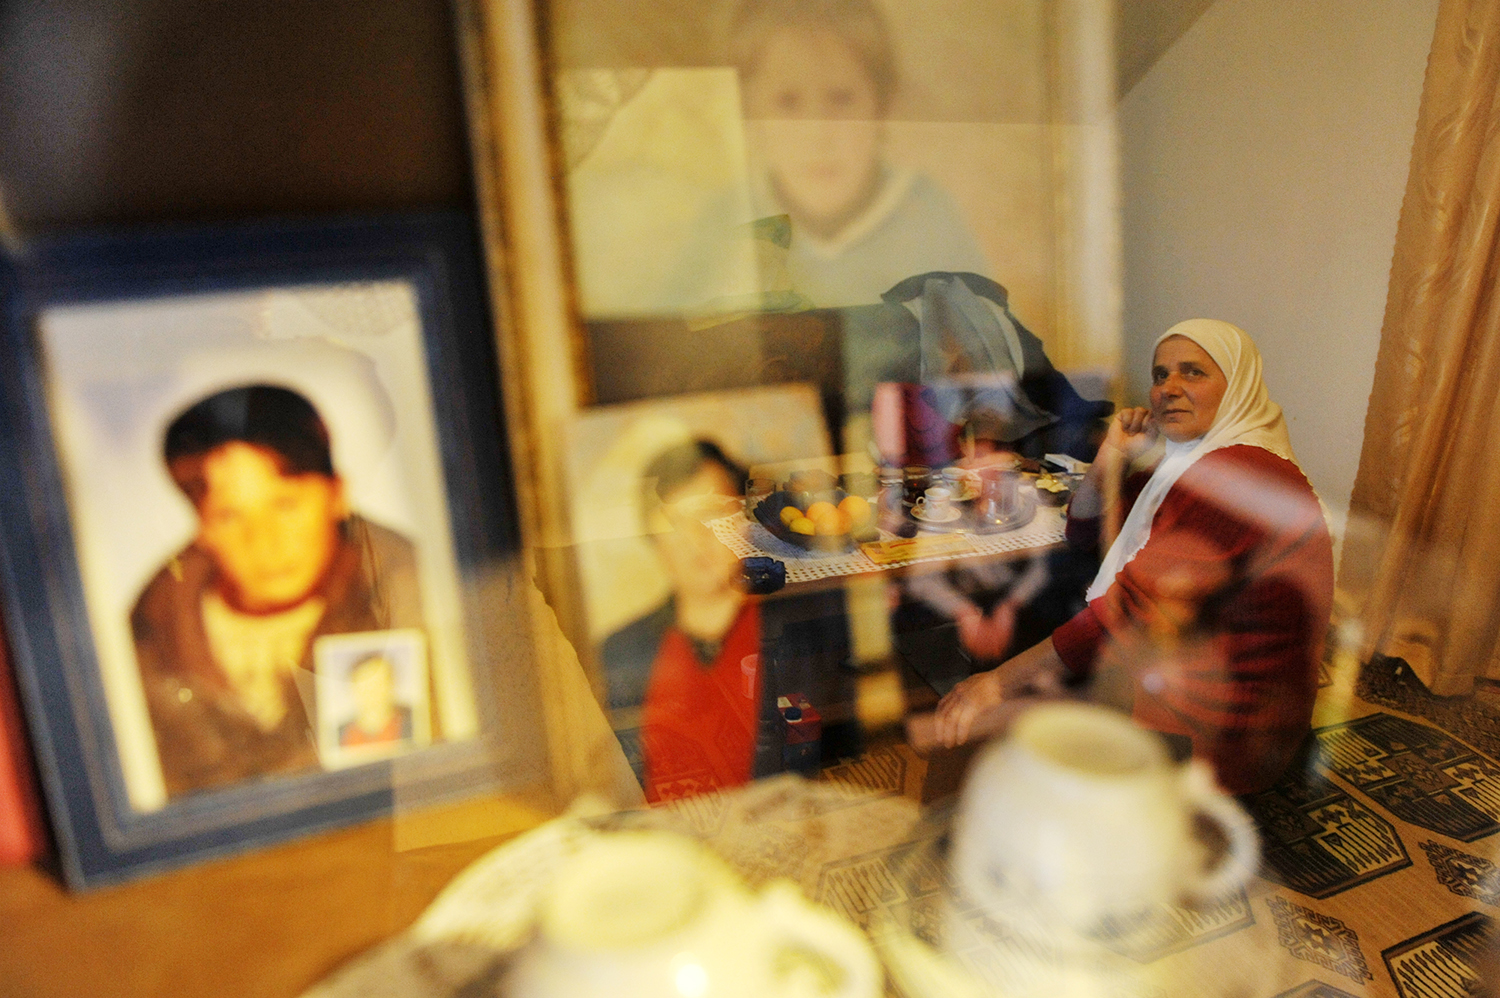 Hatidza Mehmedovic, a Bosnian Muslim woman survivor of the 1995 Srebrenica massacre,is looking at photos of her husband and her two sons who were killed during 1995 Srebrenica massacre.